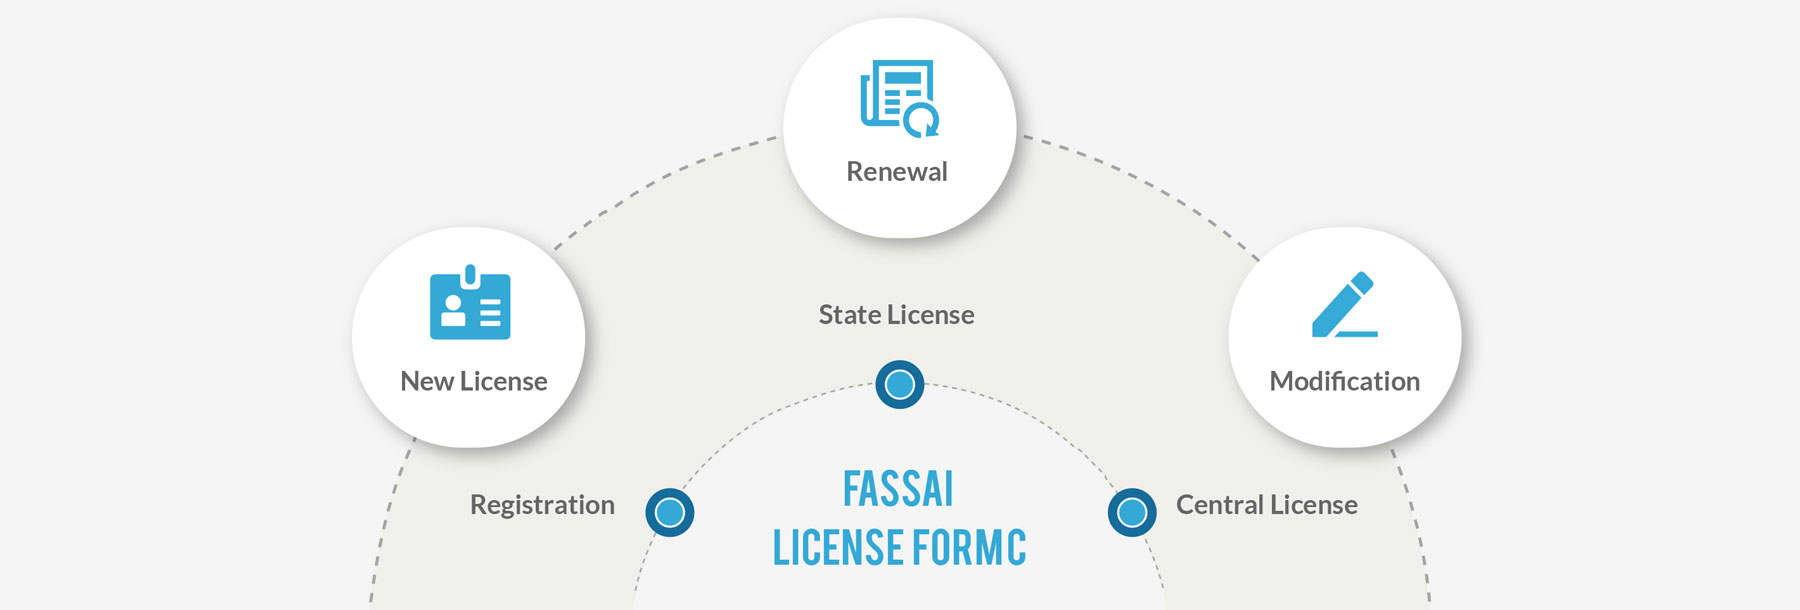 FSSAI License Form C - New License, Renewal & Modifications